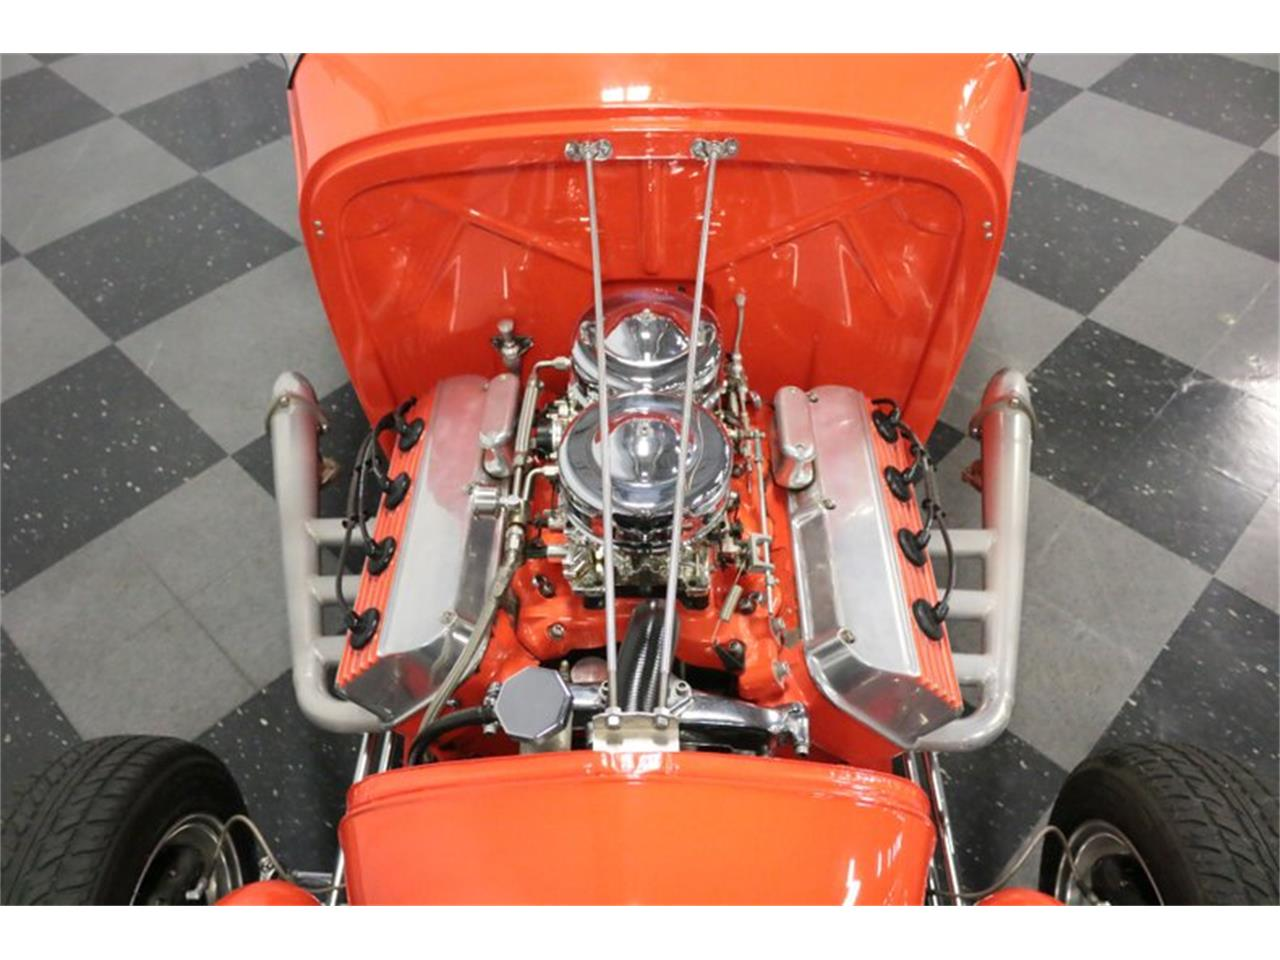 1932 Ford Roadster for sale in Ft Worth, TX – photo 3